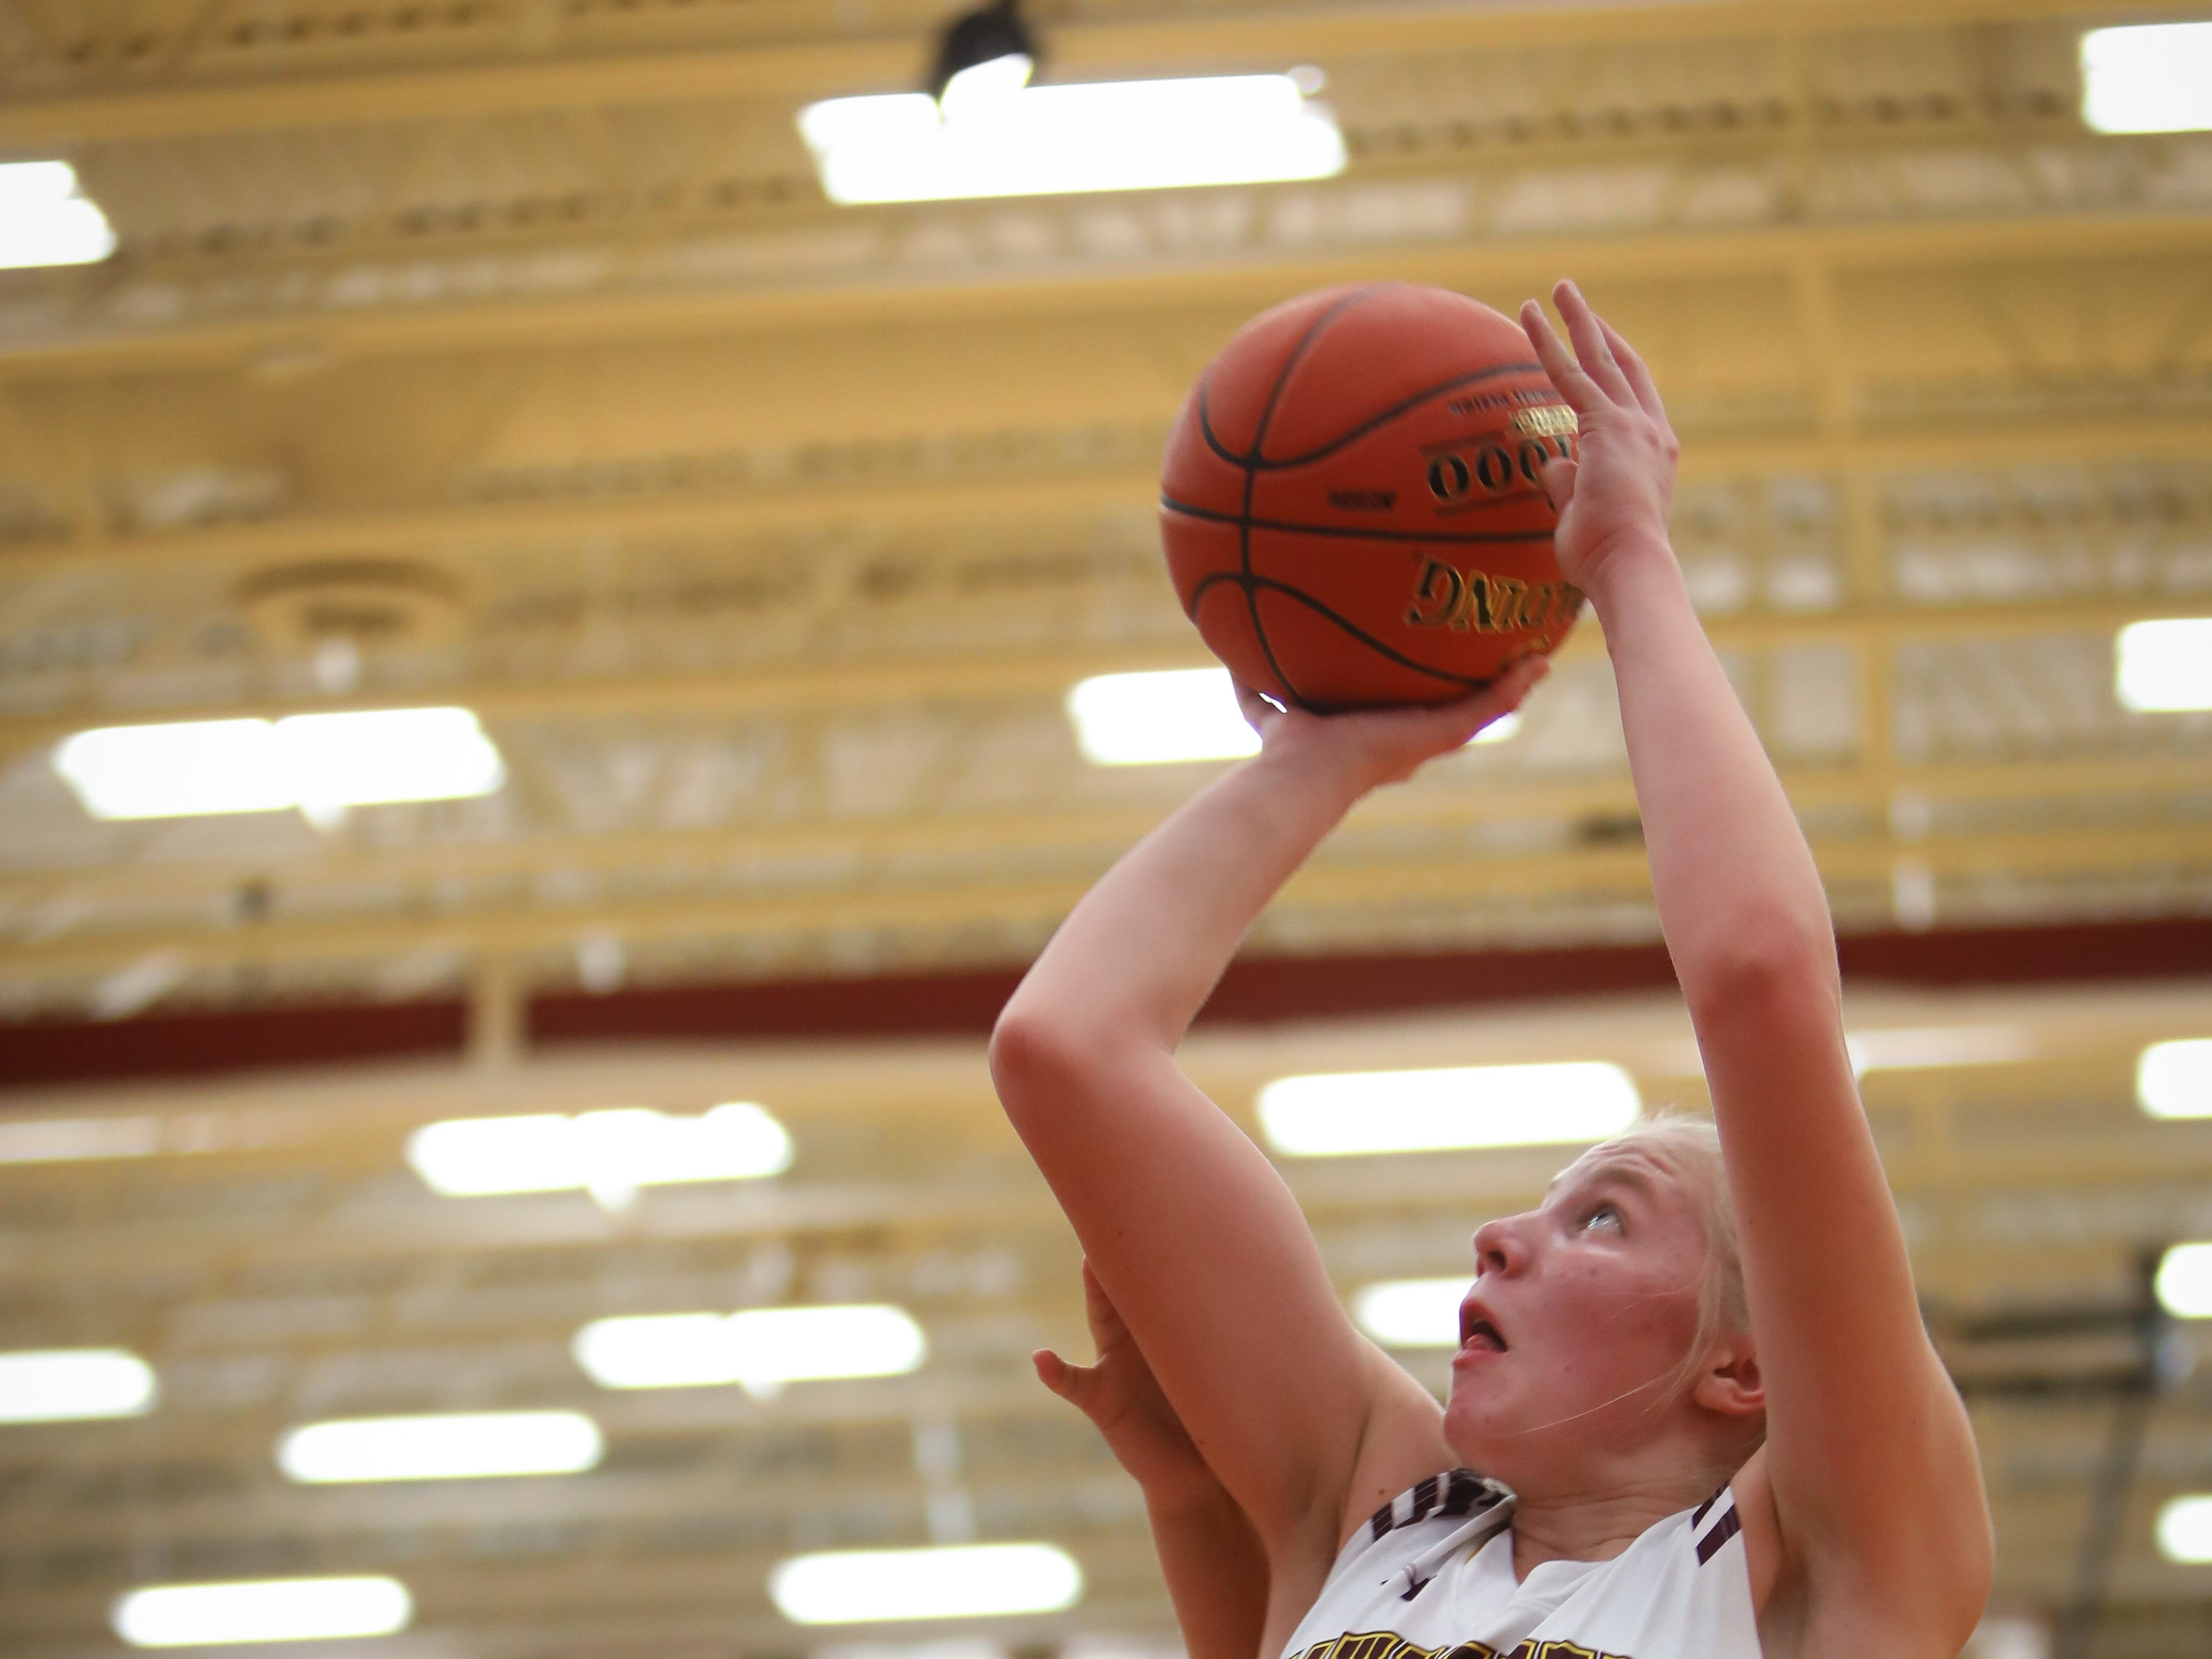 Ankeny sophomore Abby Johnson goes for a lay-up during a girls high school basketball game between the Lincoln Railsplitters and the Ankeny Hawks at Ankeny High School on Dec. 4, 2018 in Ankeny, Iowa.